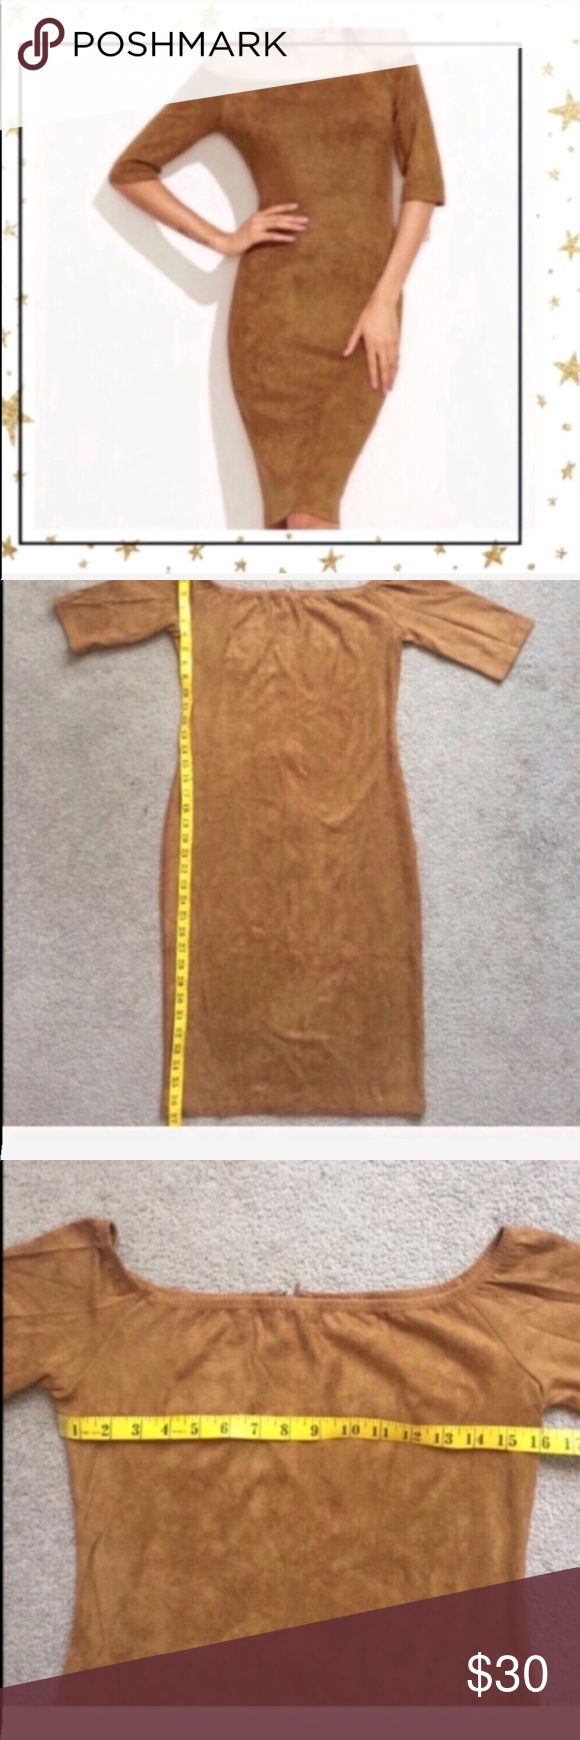 """Off-shoulder camel bodycon dress (CR23K9P) New without tag. Off shoulder pencil dress. Very stylish and comfy and soft. Half sleeve . Total length is 37"""", bust 32"""", hips 34"""".  Offers welcome. Dresses Midi"""